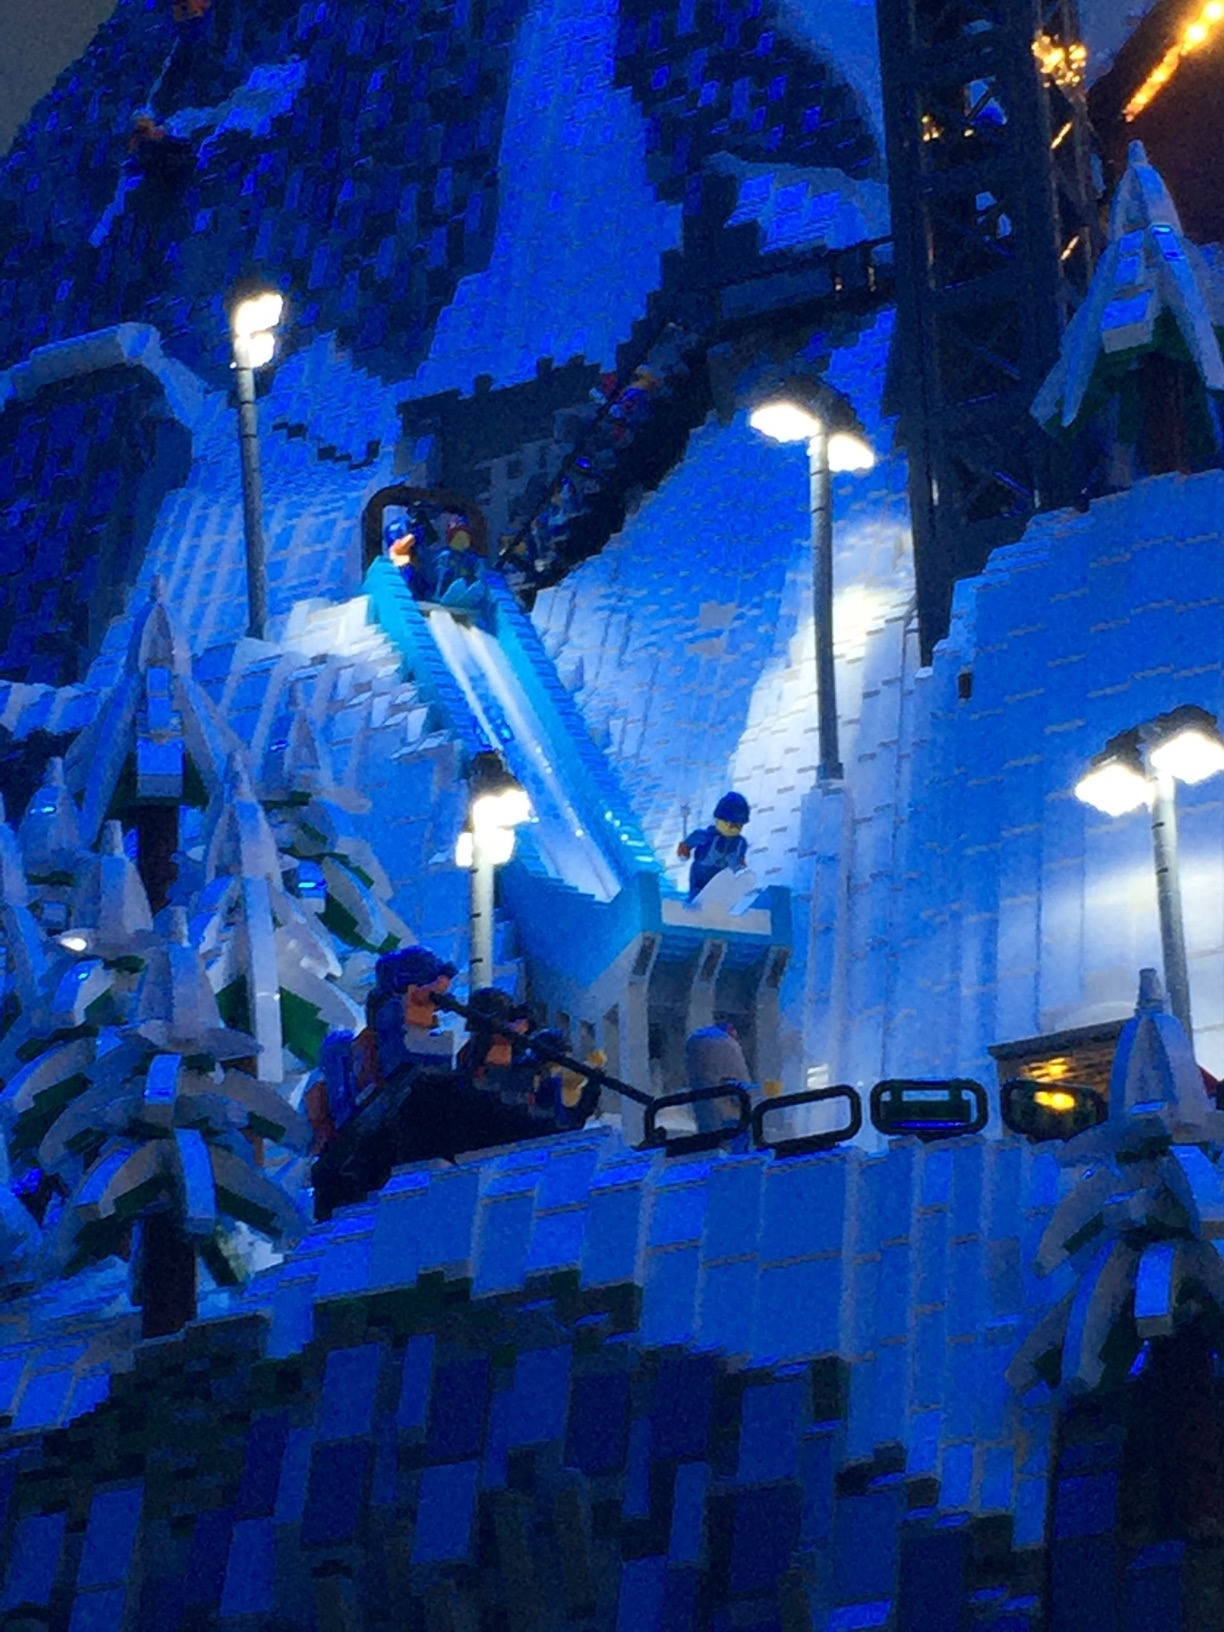 A LEGO skier about to take off from a ski jump.